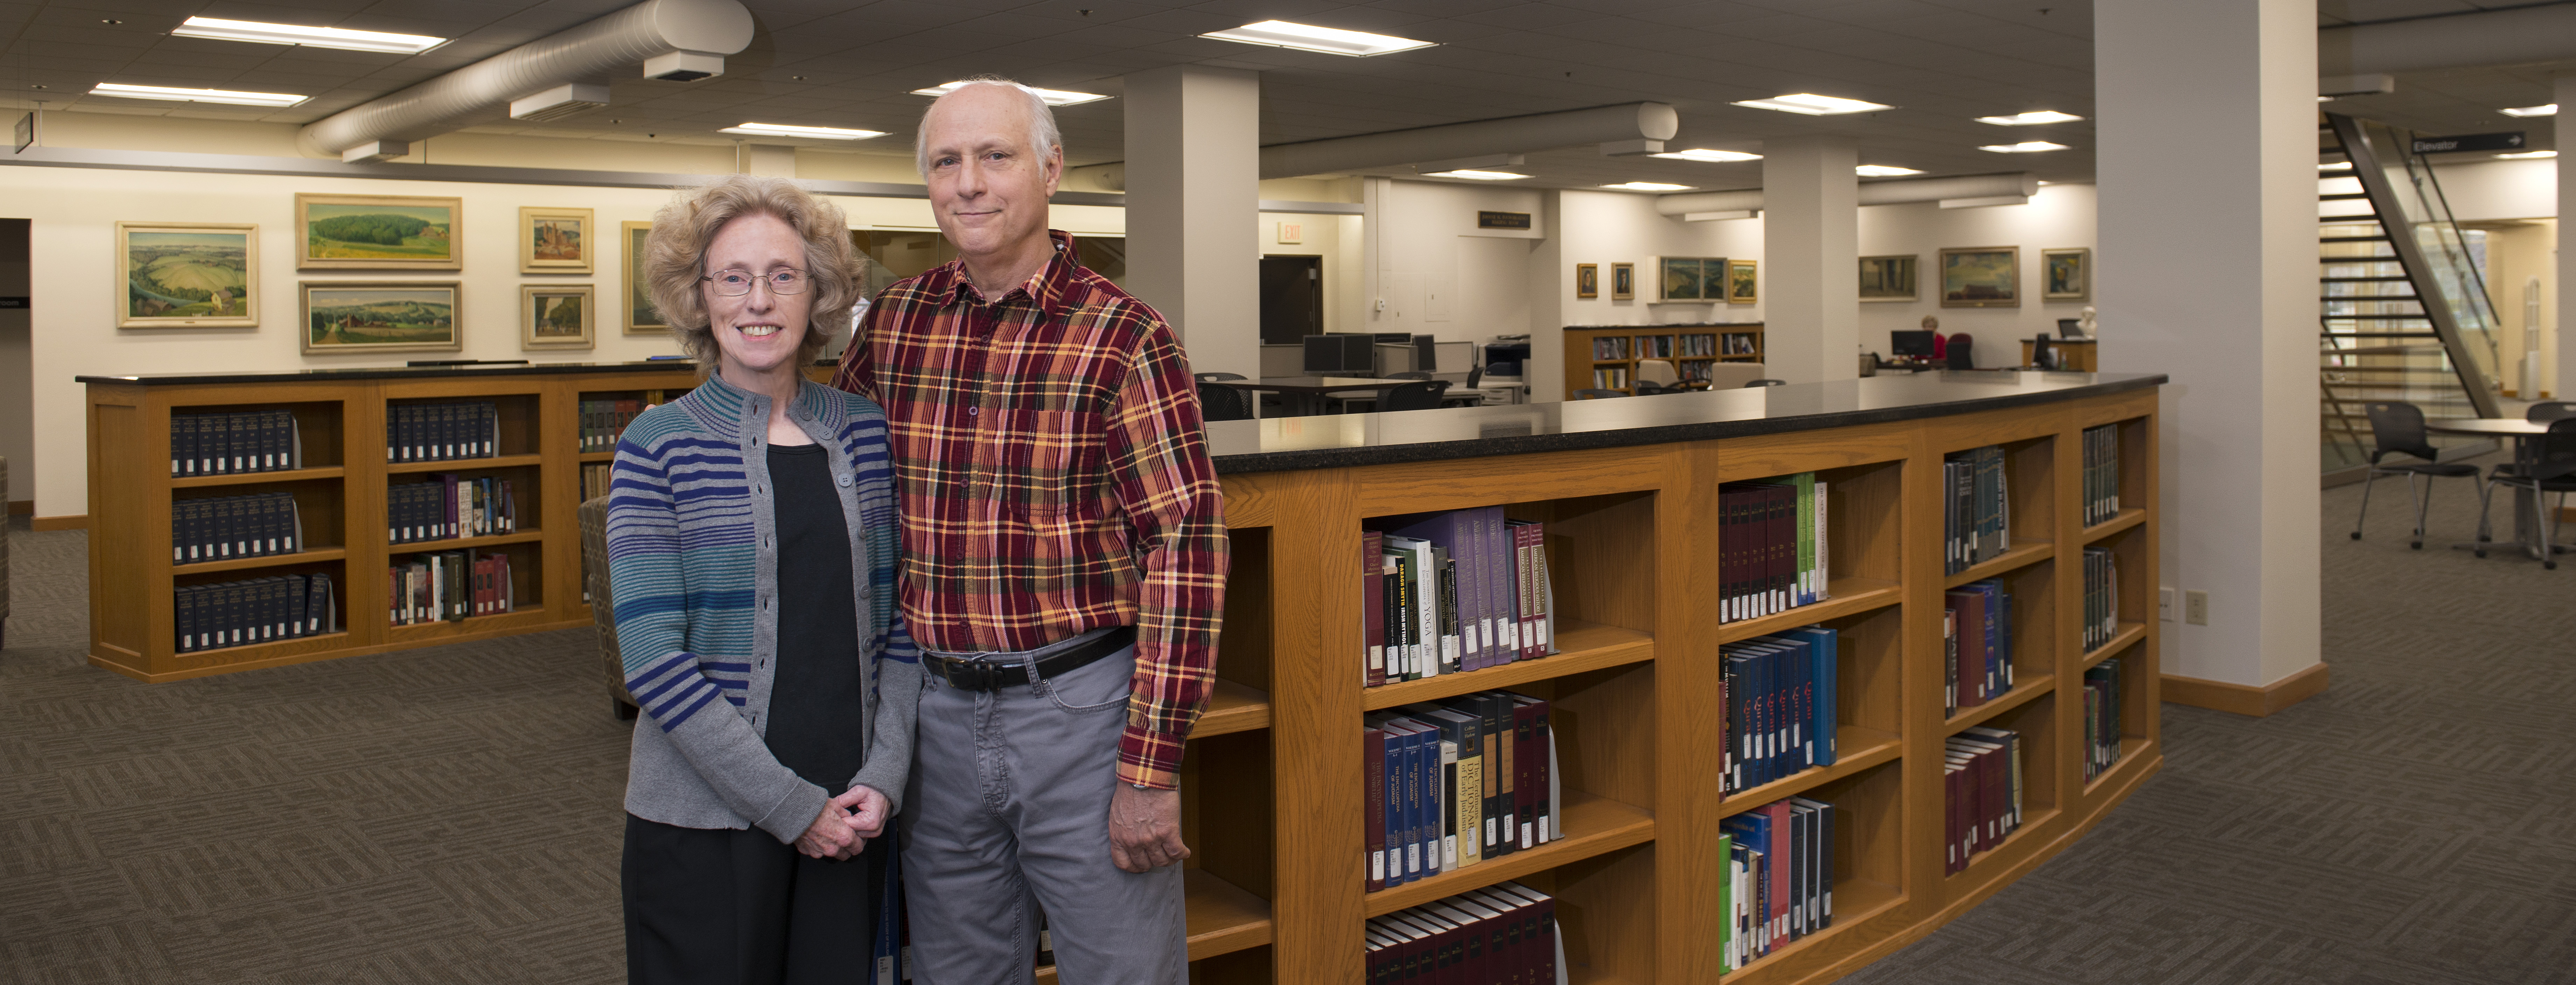 INHERITANCE BECOMES A MEMORIAL FUND TO HONOR PARENTS